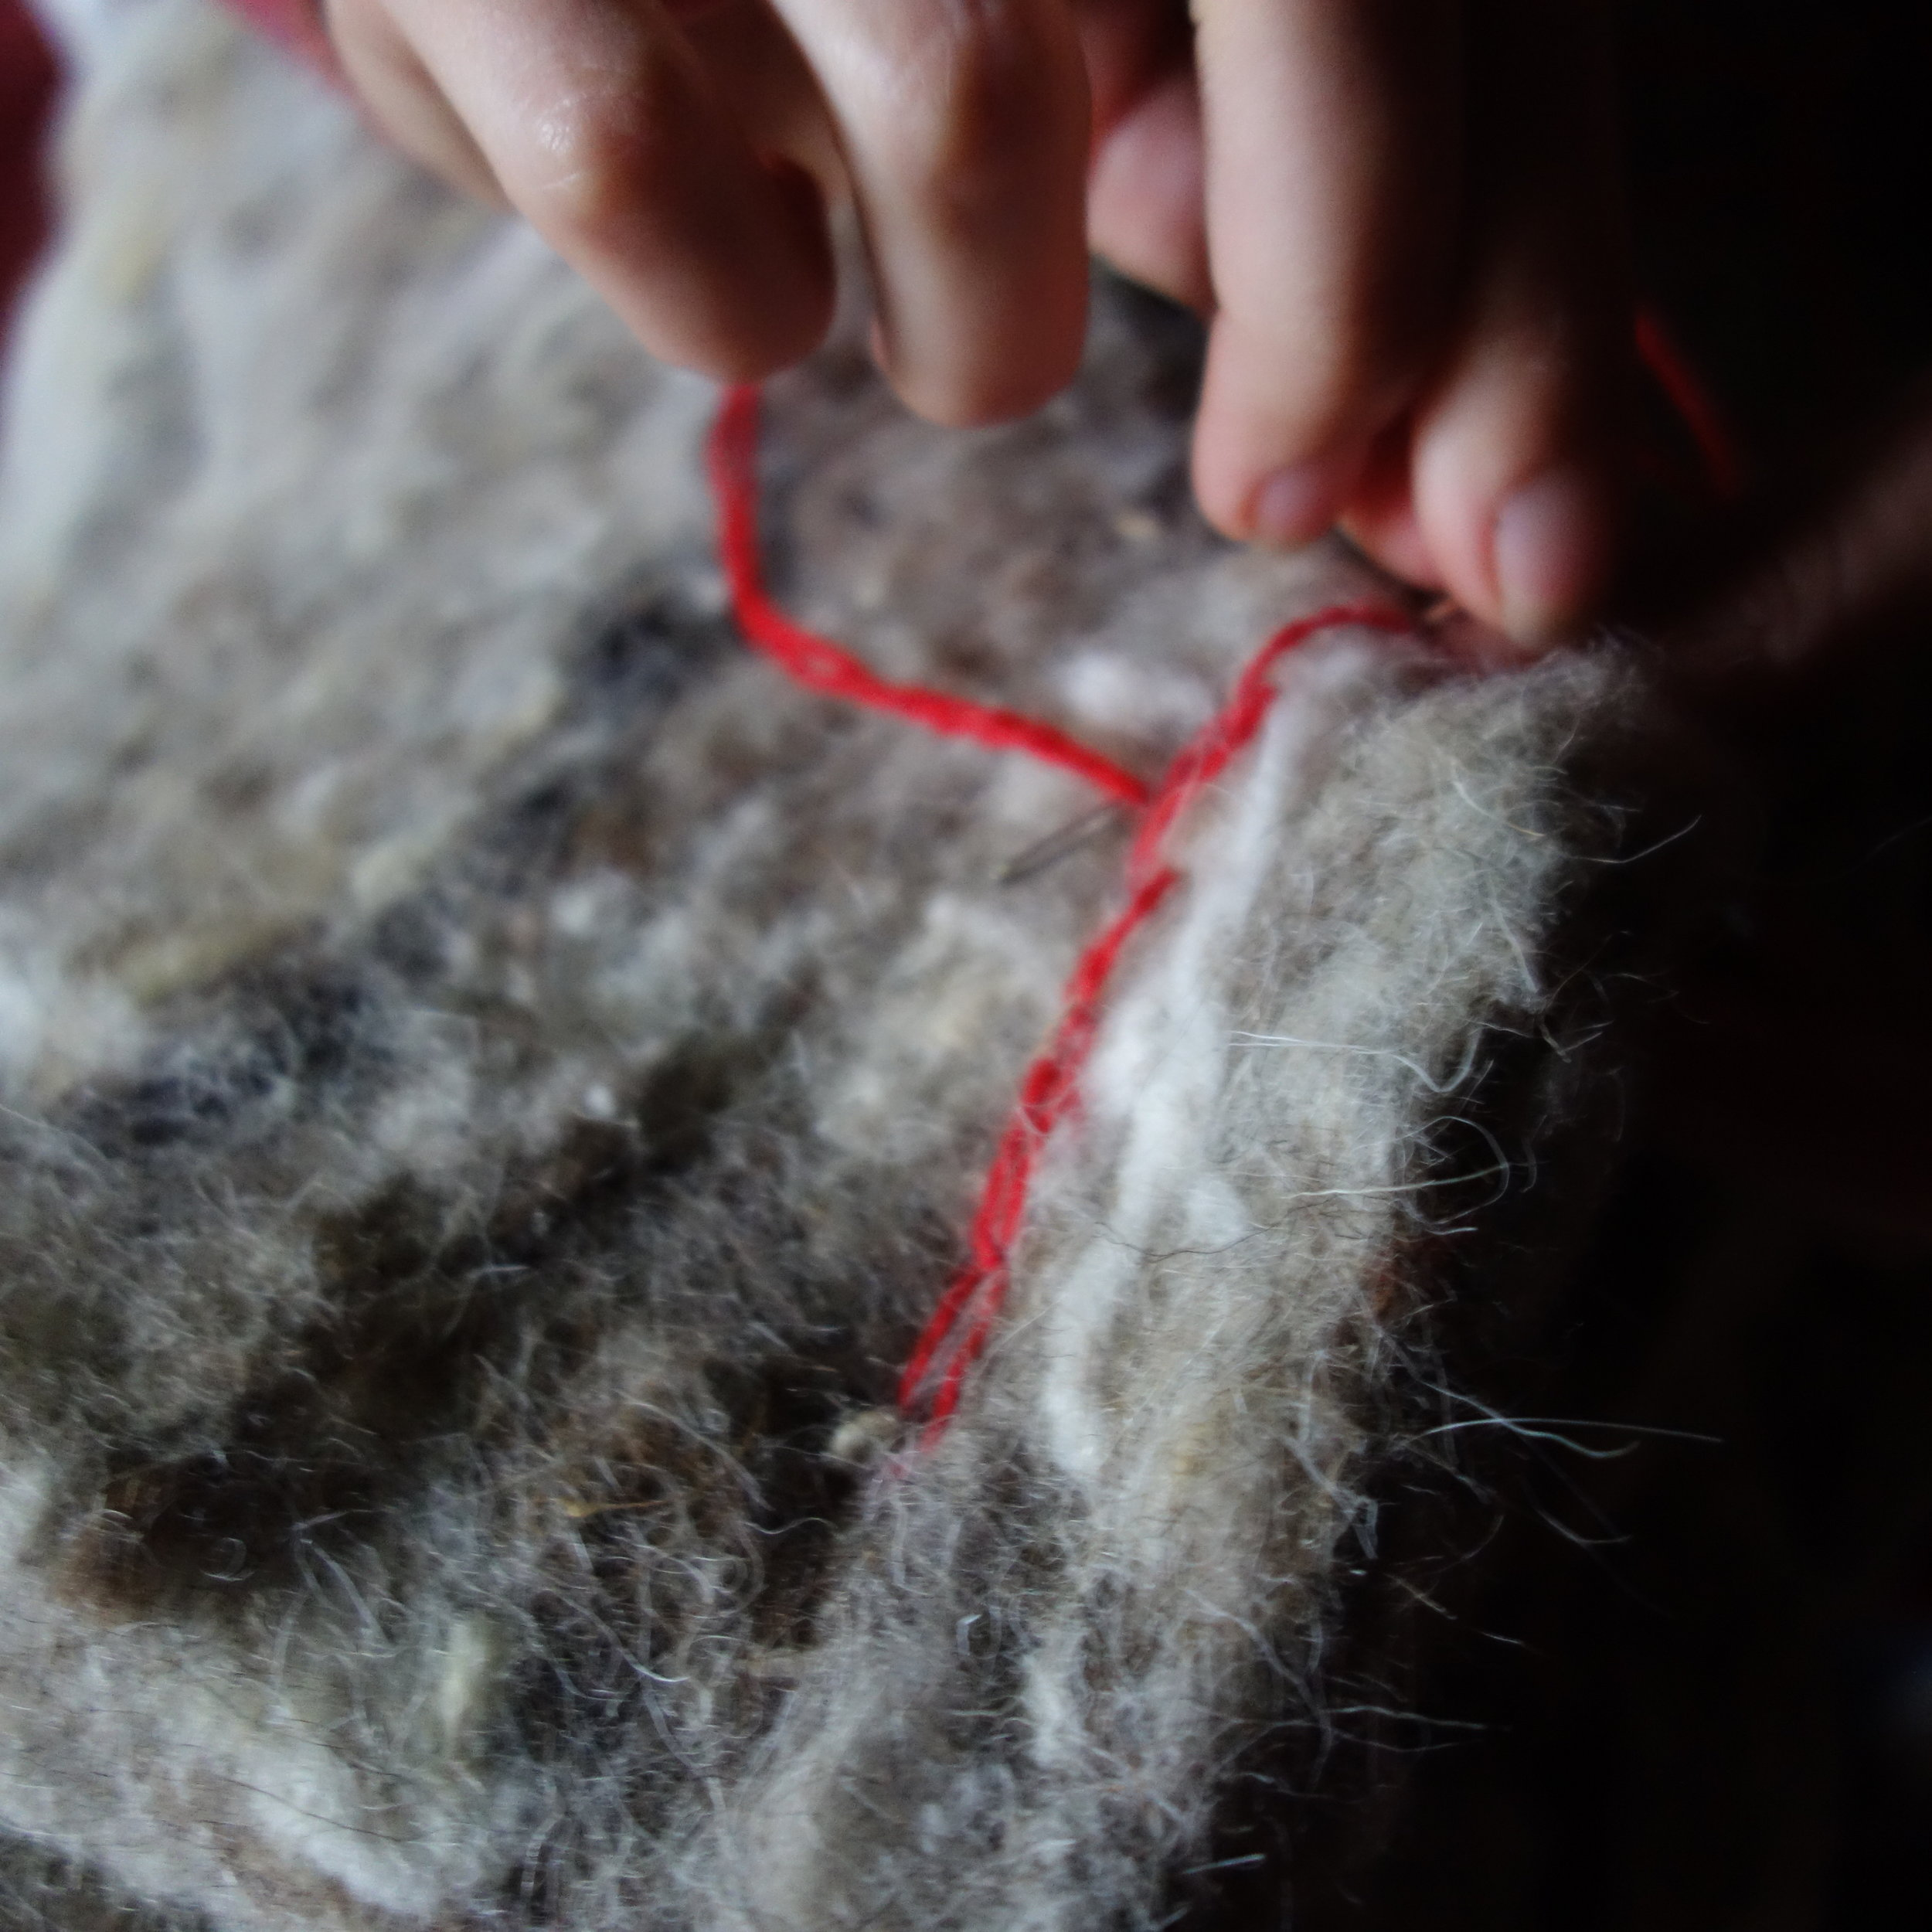 Red Thread Project, Stroud